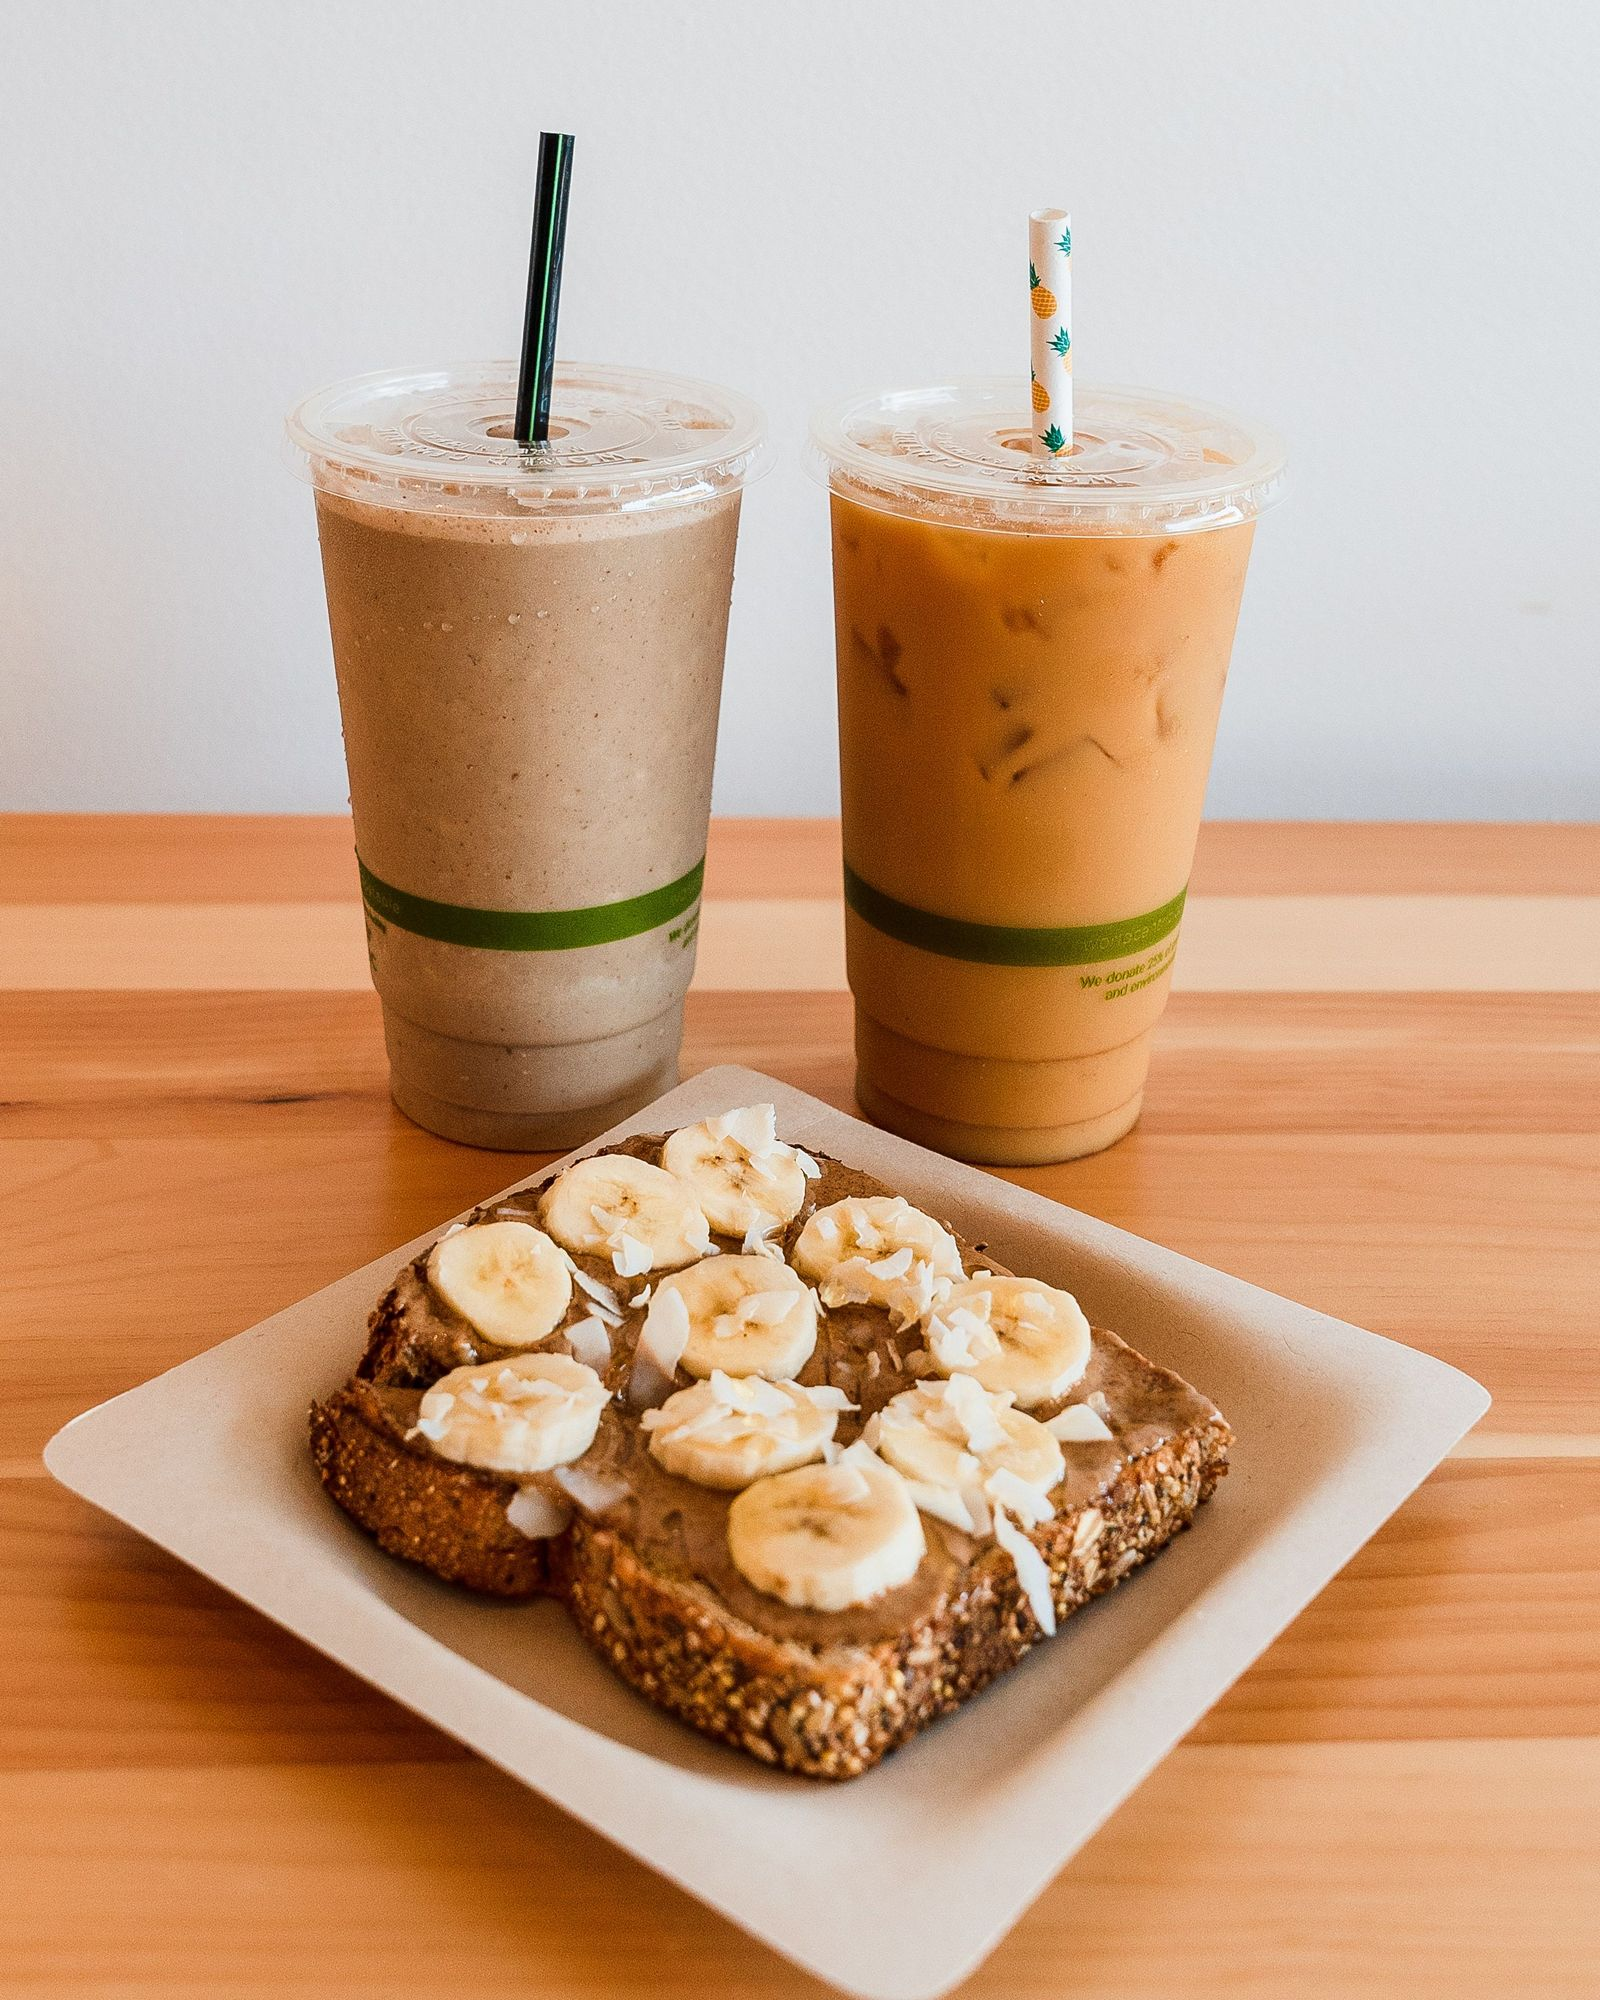 Wow Wow Hawaiian Lemonades Launches Limited Fall Menu with Focus on Pumpkin Spice & Plant-Based Energy Lemonades